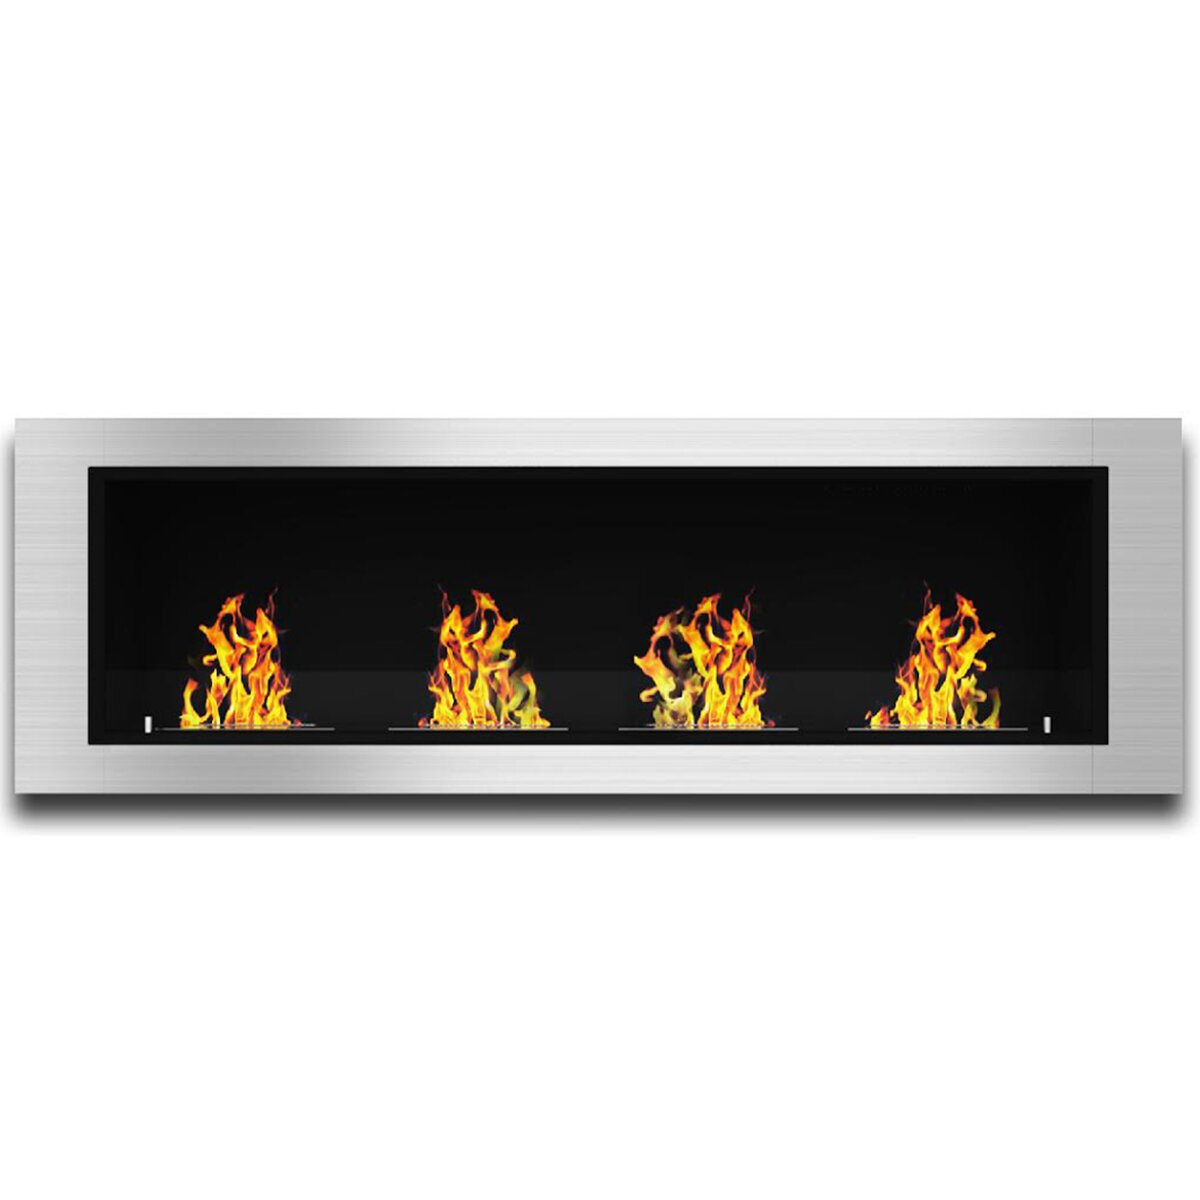 Natural gas wall mount fireplaces - Elite Flame Luxe Ventless Wall Mount Bio Ethanol Fireplace